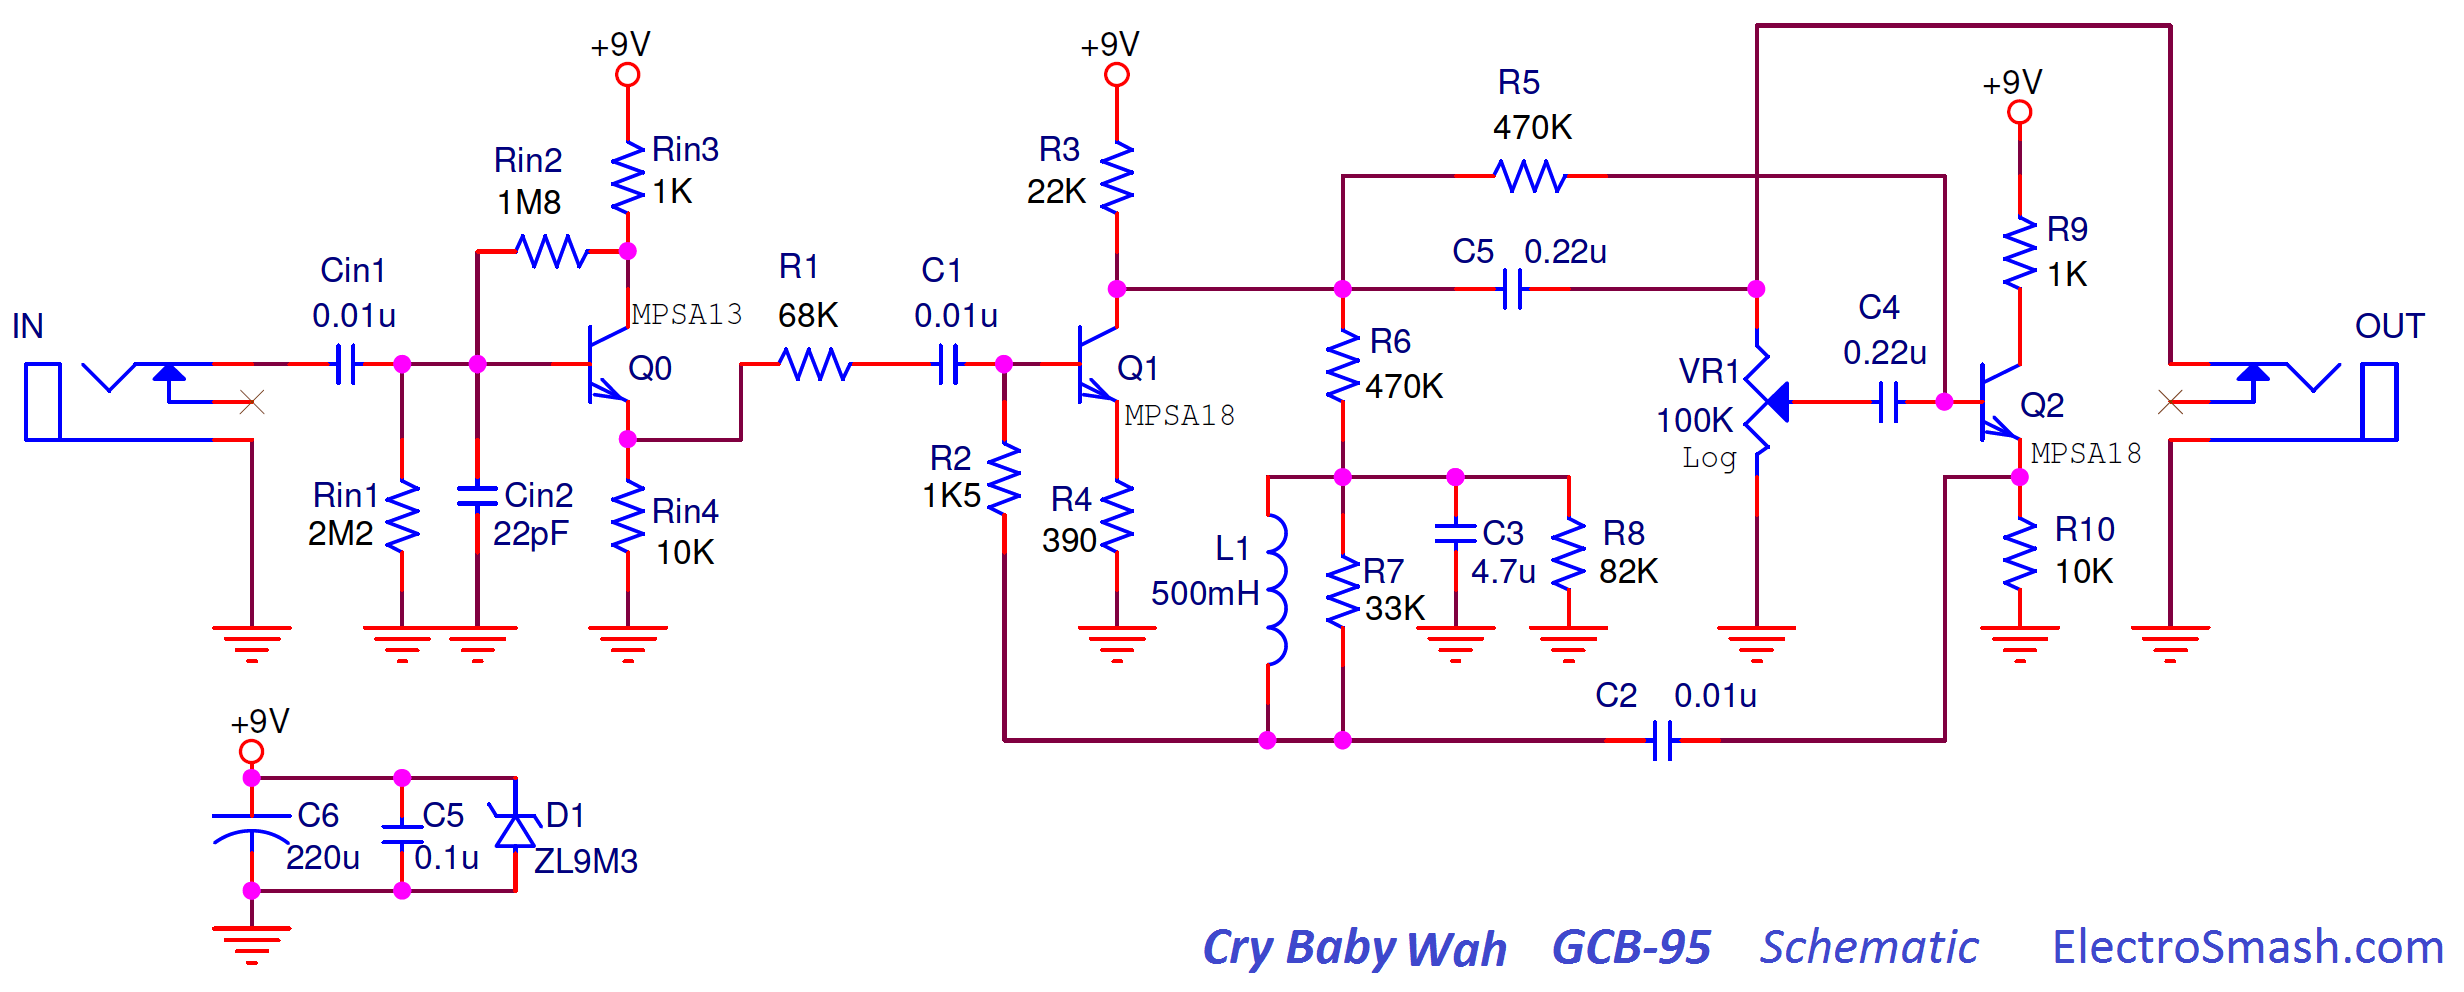 cry baby wah gcb 95 schematic gcb 95 schematic freestompboxes org view topic dunlop cry baby crybaby gcb-95 wiring diagram at eliteediting.co